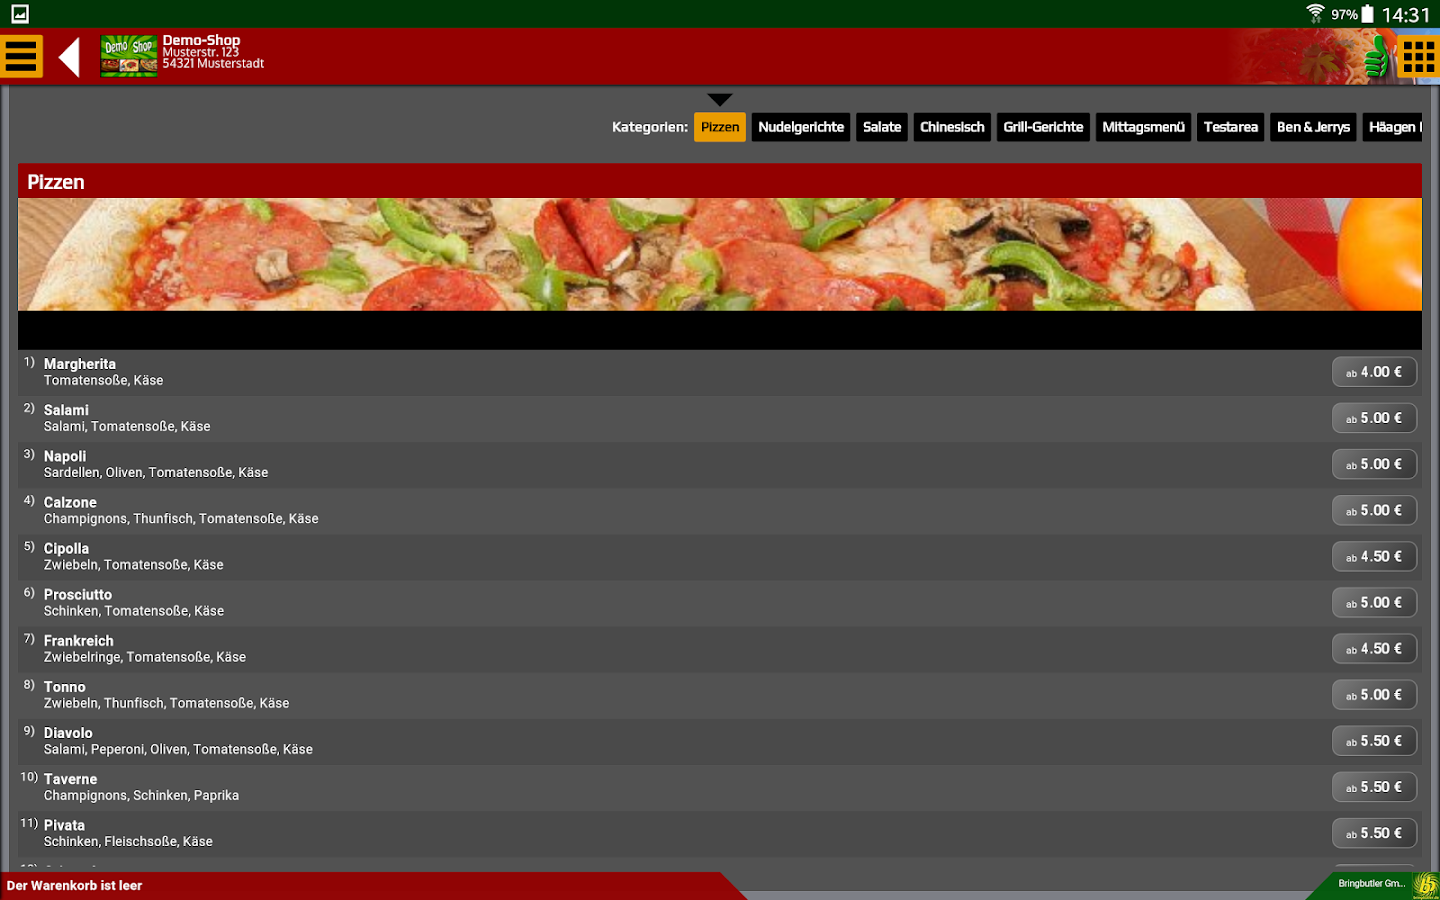 Bringbutler - Pizza, Pasta, ..- screenshot